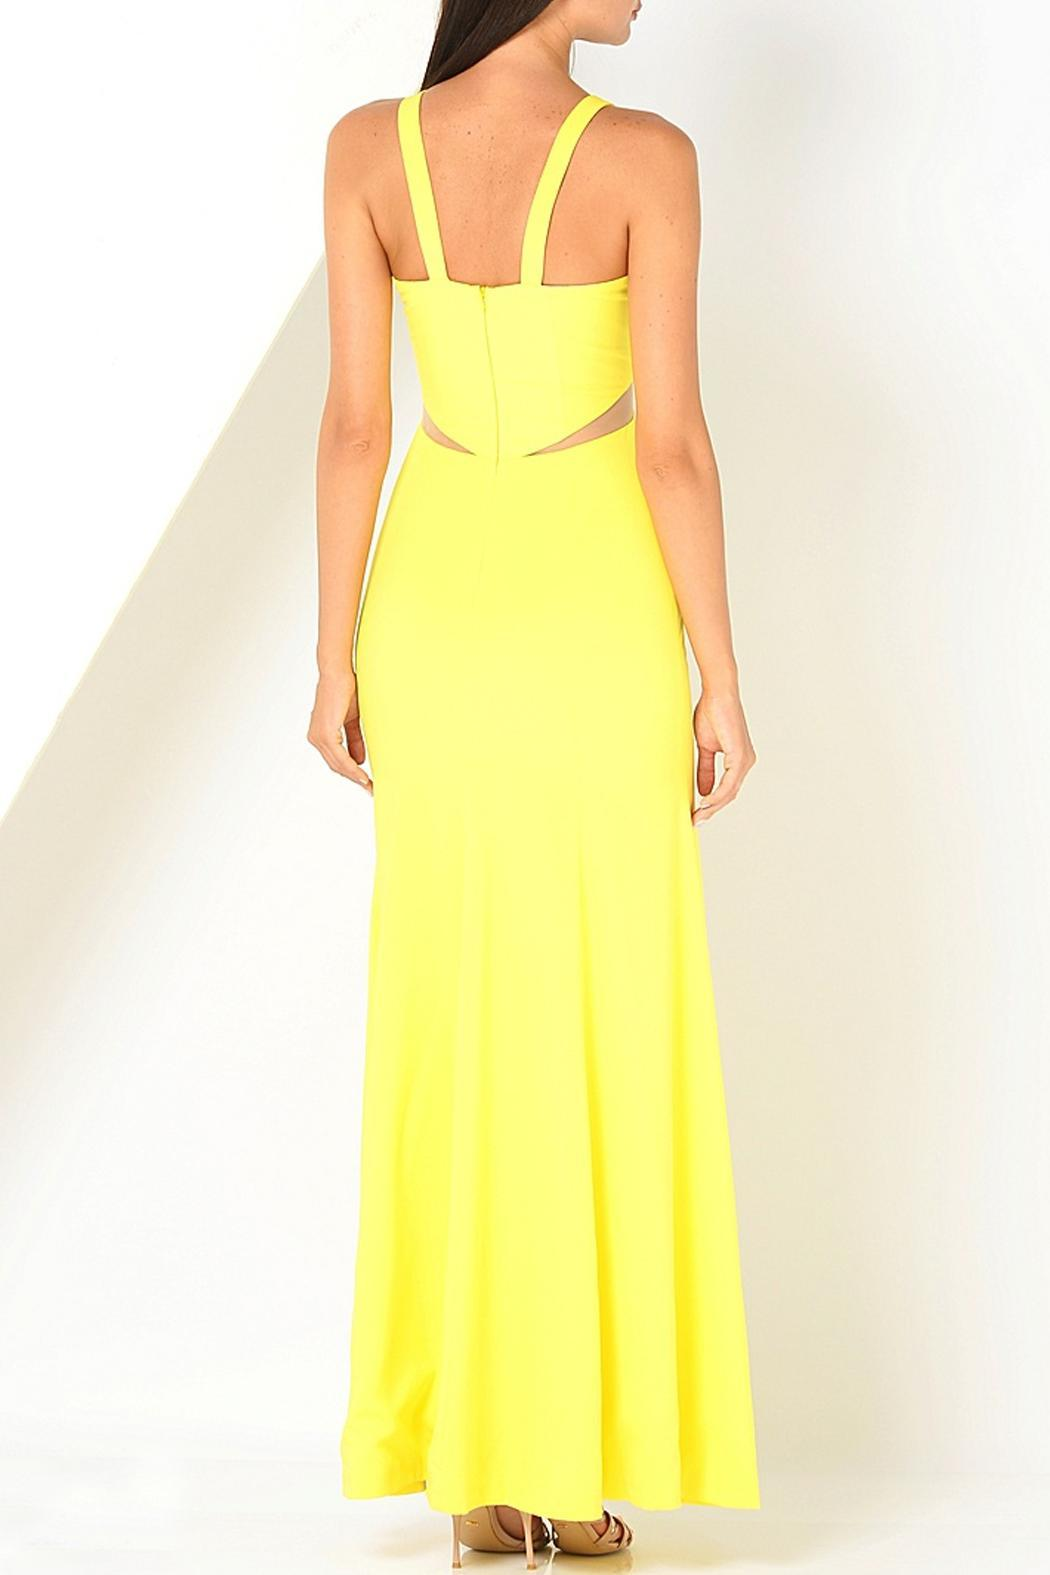 Isabel Garcia Maxi Yellow Dress - Front Full Image